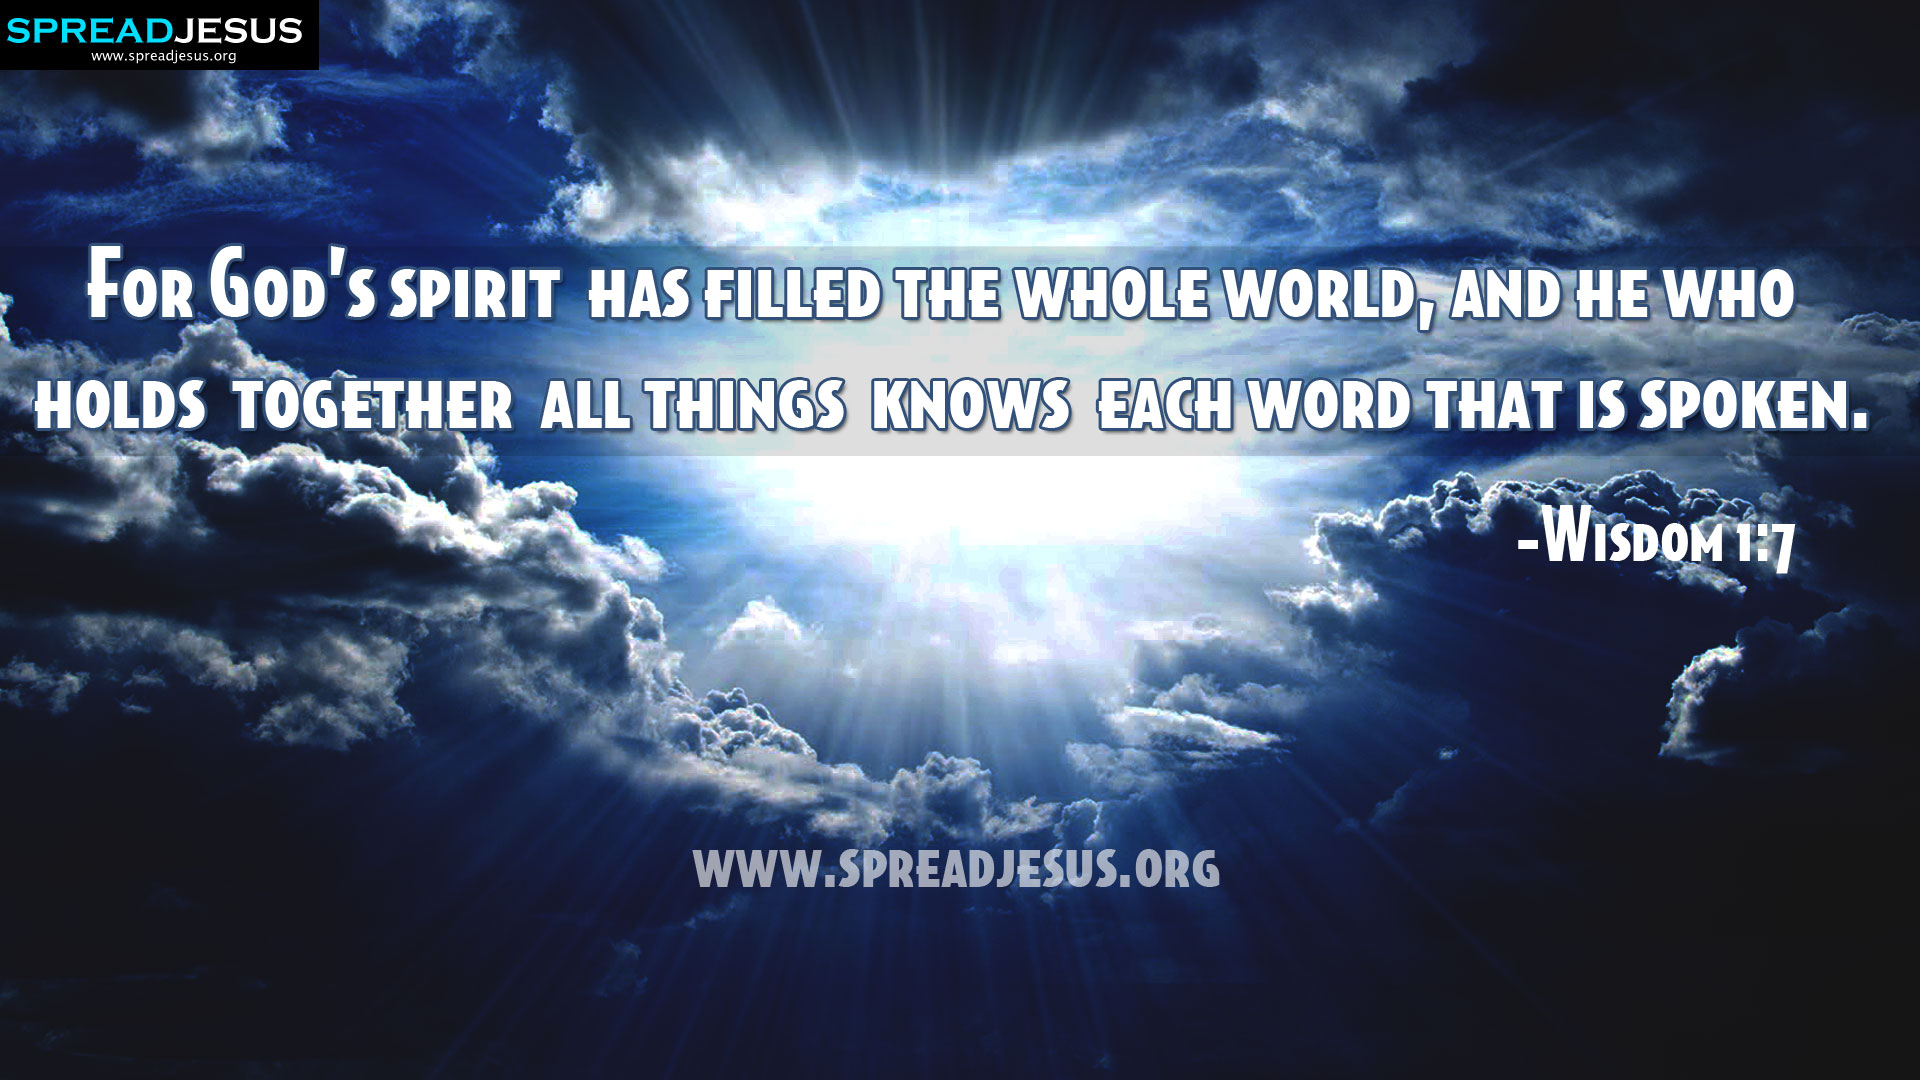 CHRISTIAN HD WALLPAPERS: HOLY BIBLE QUOTES : wisdom 1:7-For GOD's spirit has filled the whole world, and he who holds together all things knows each word that is spoken. - wisdom 1:7